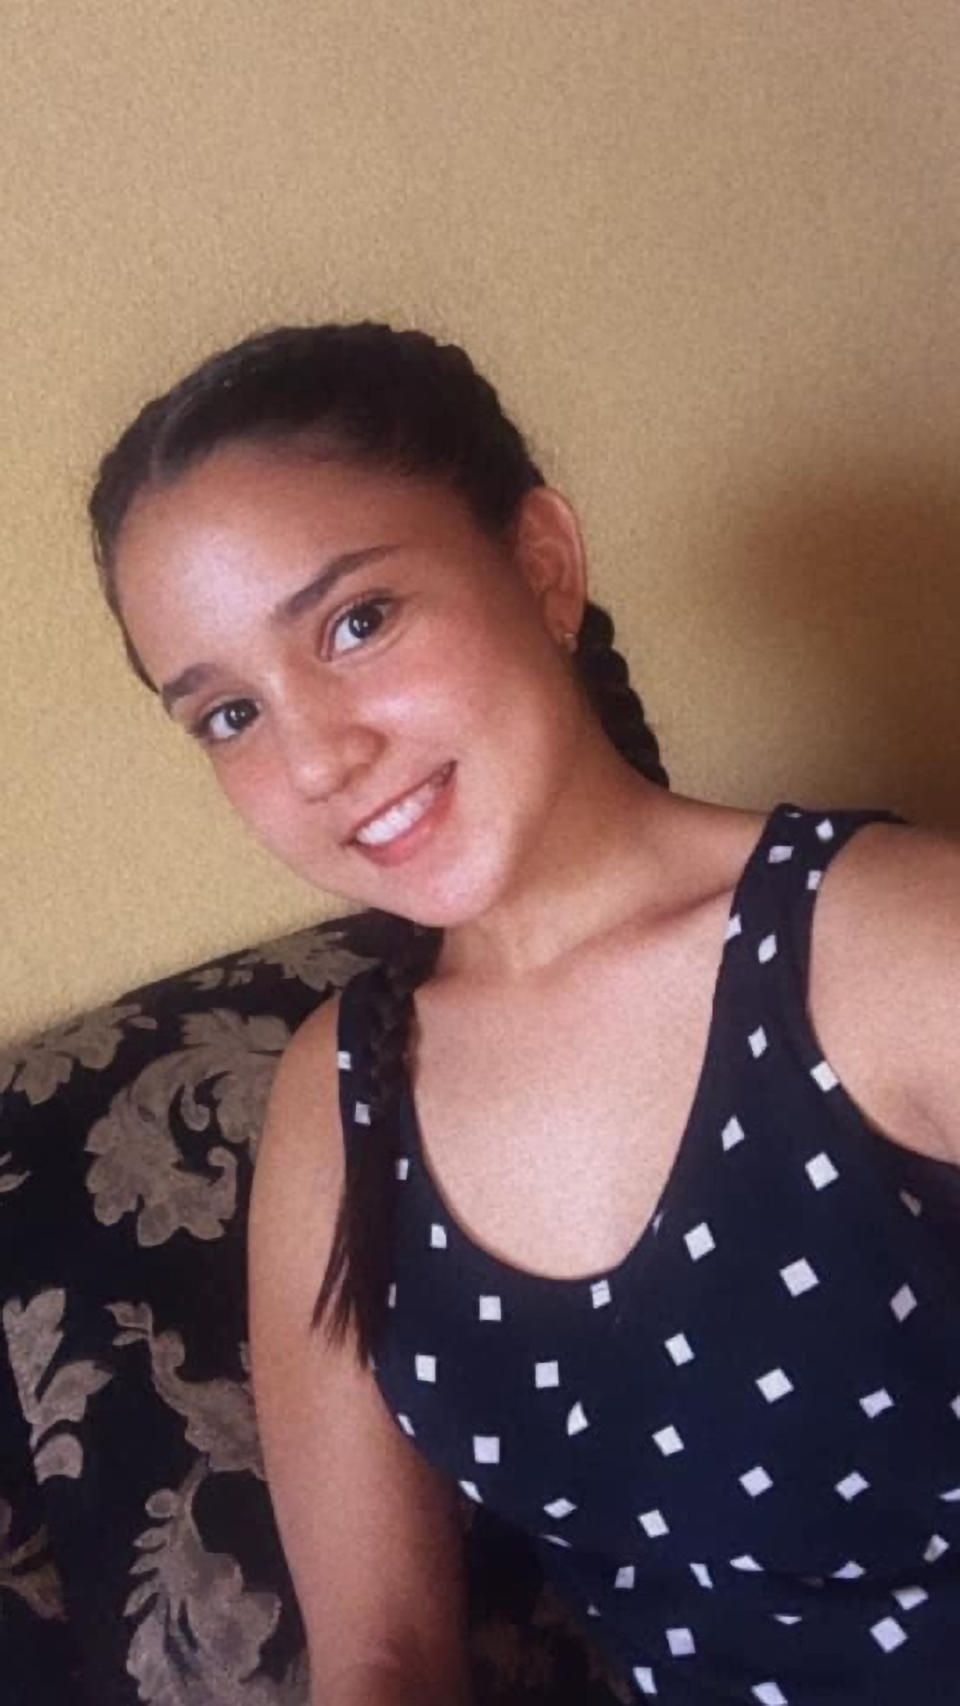 Litzy Amelia Cordon was kidnapped earlier this month. Source: Newsflash/Australscope